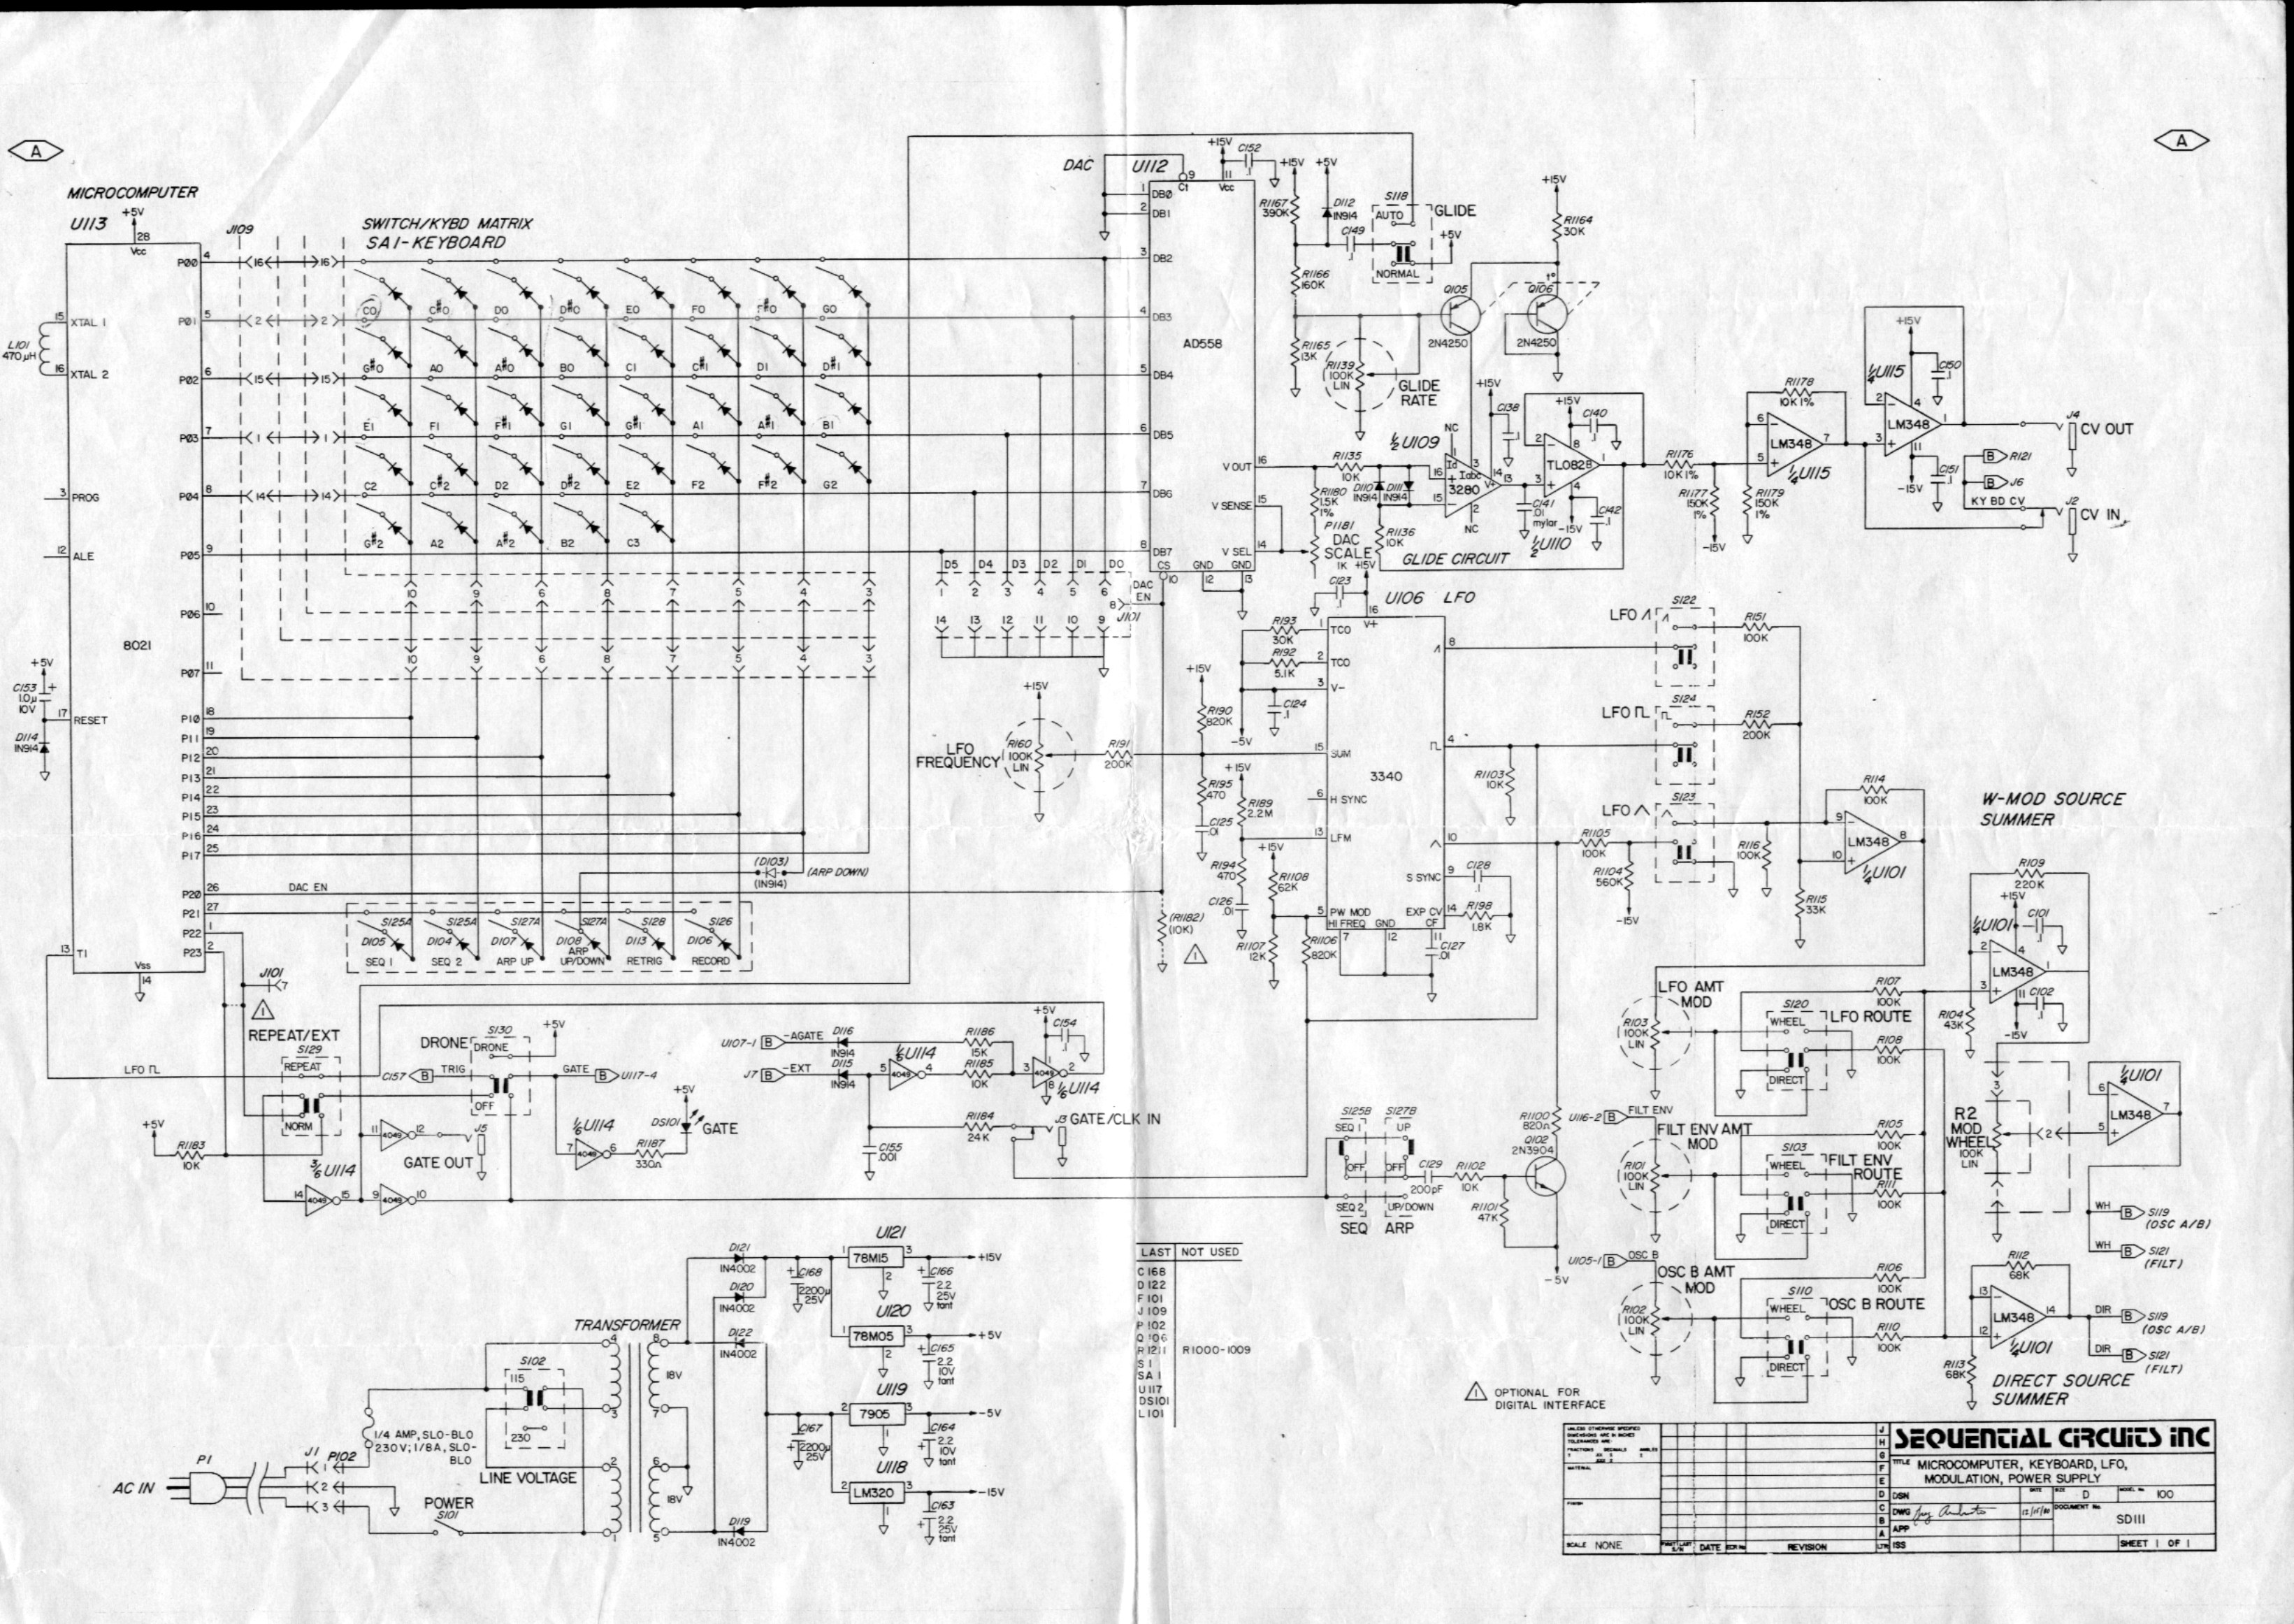 ... Circuits Pro-One Schematic 1 of 2.jpeg ...